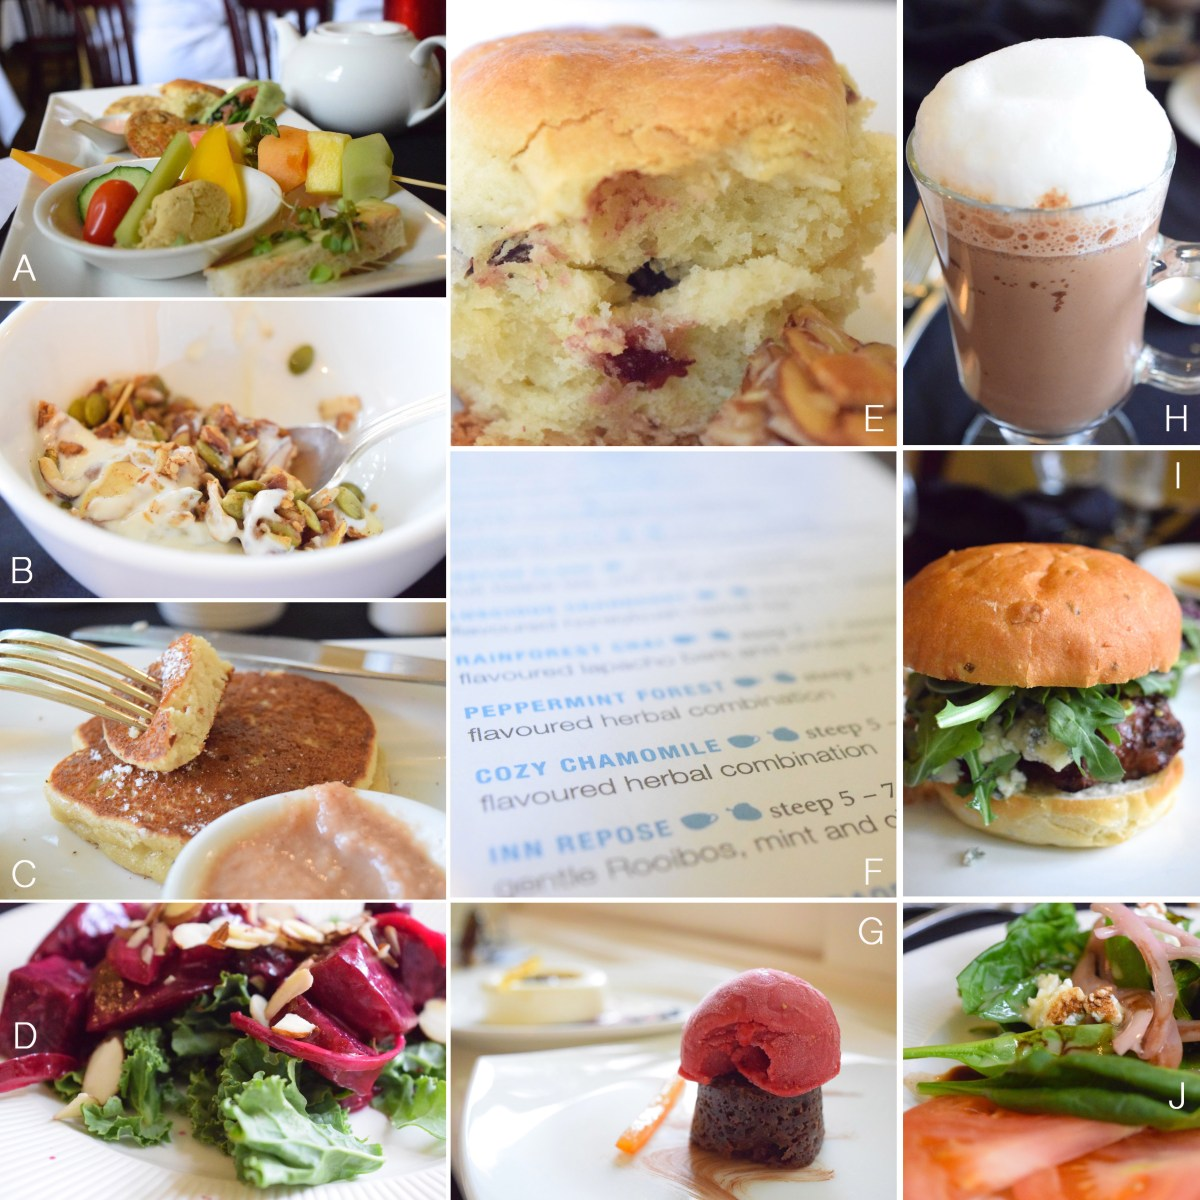 Ste Anne's food and drink